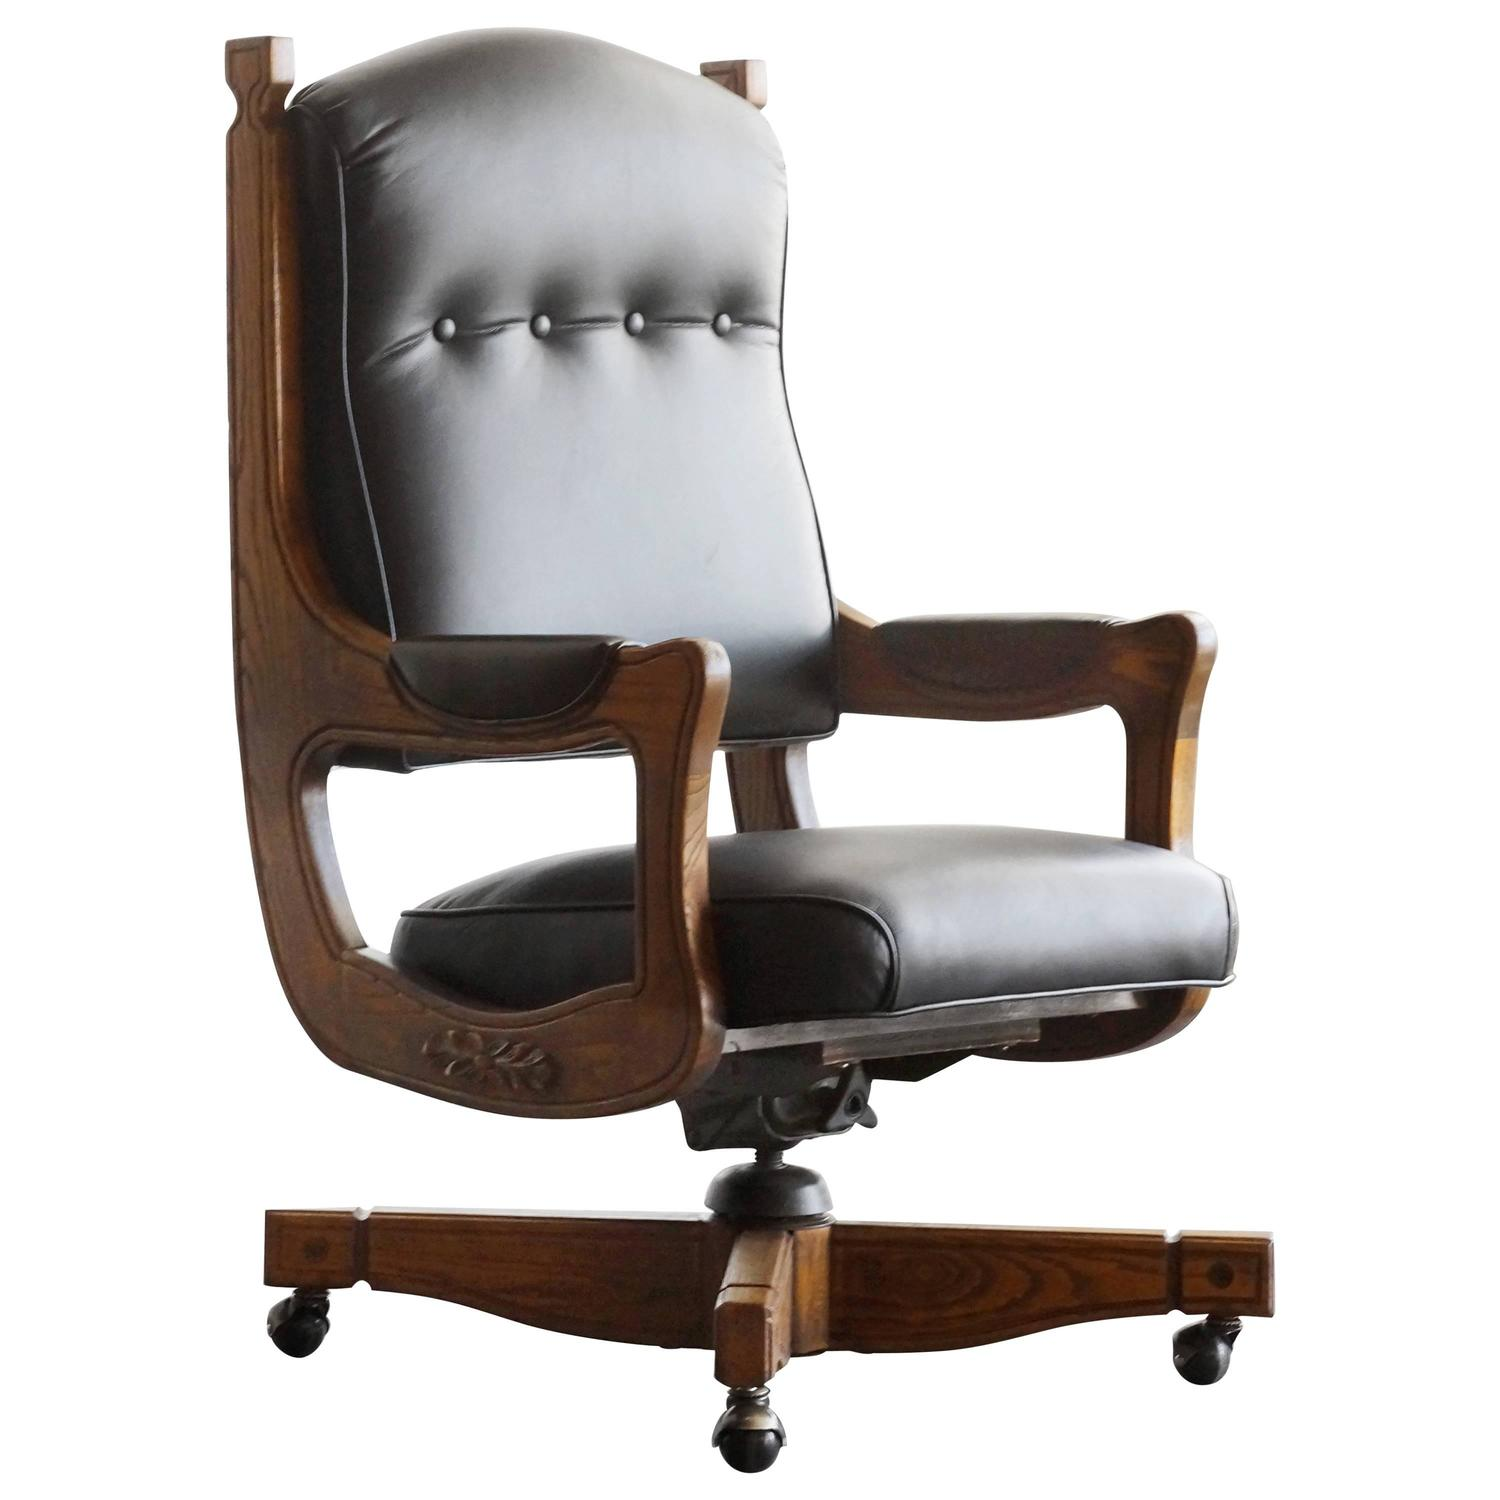 Antique chesterfield captains chair in oak and leather at 1stdibs